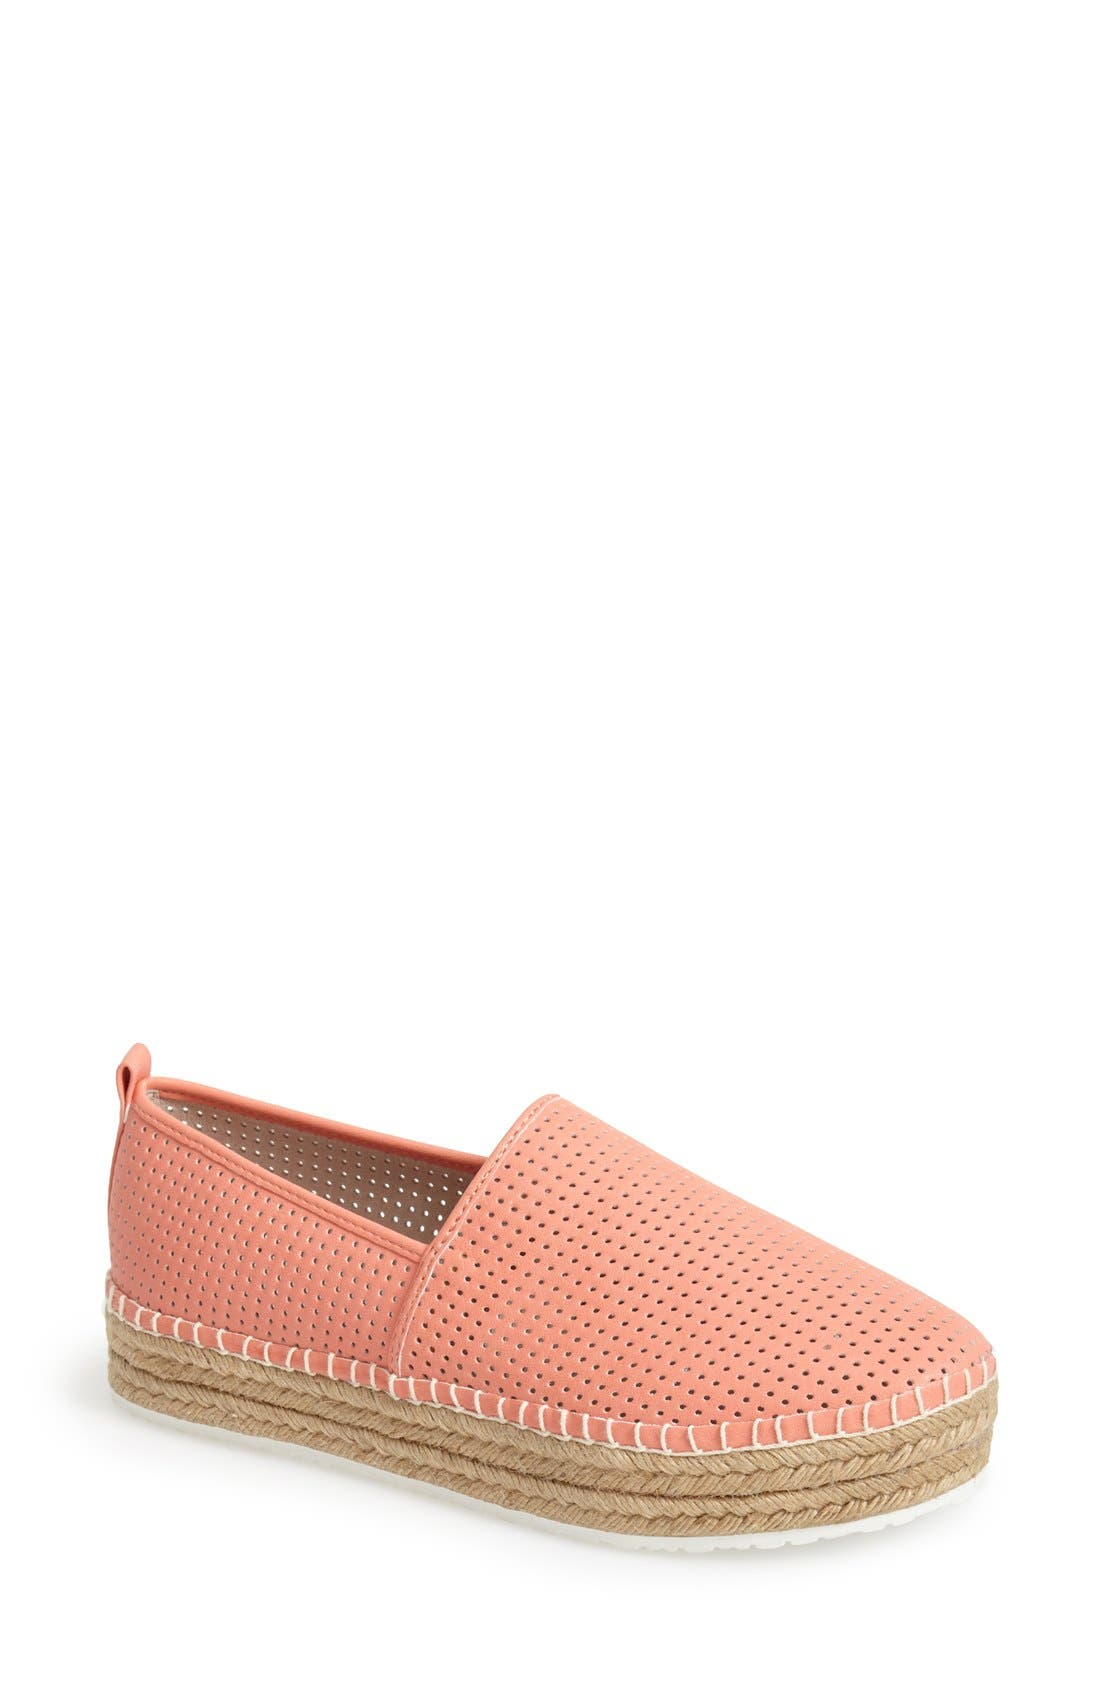 Alternate Image 1 Selected - Steve Madden 'Choppur' Espadrille Flat (Women)